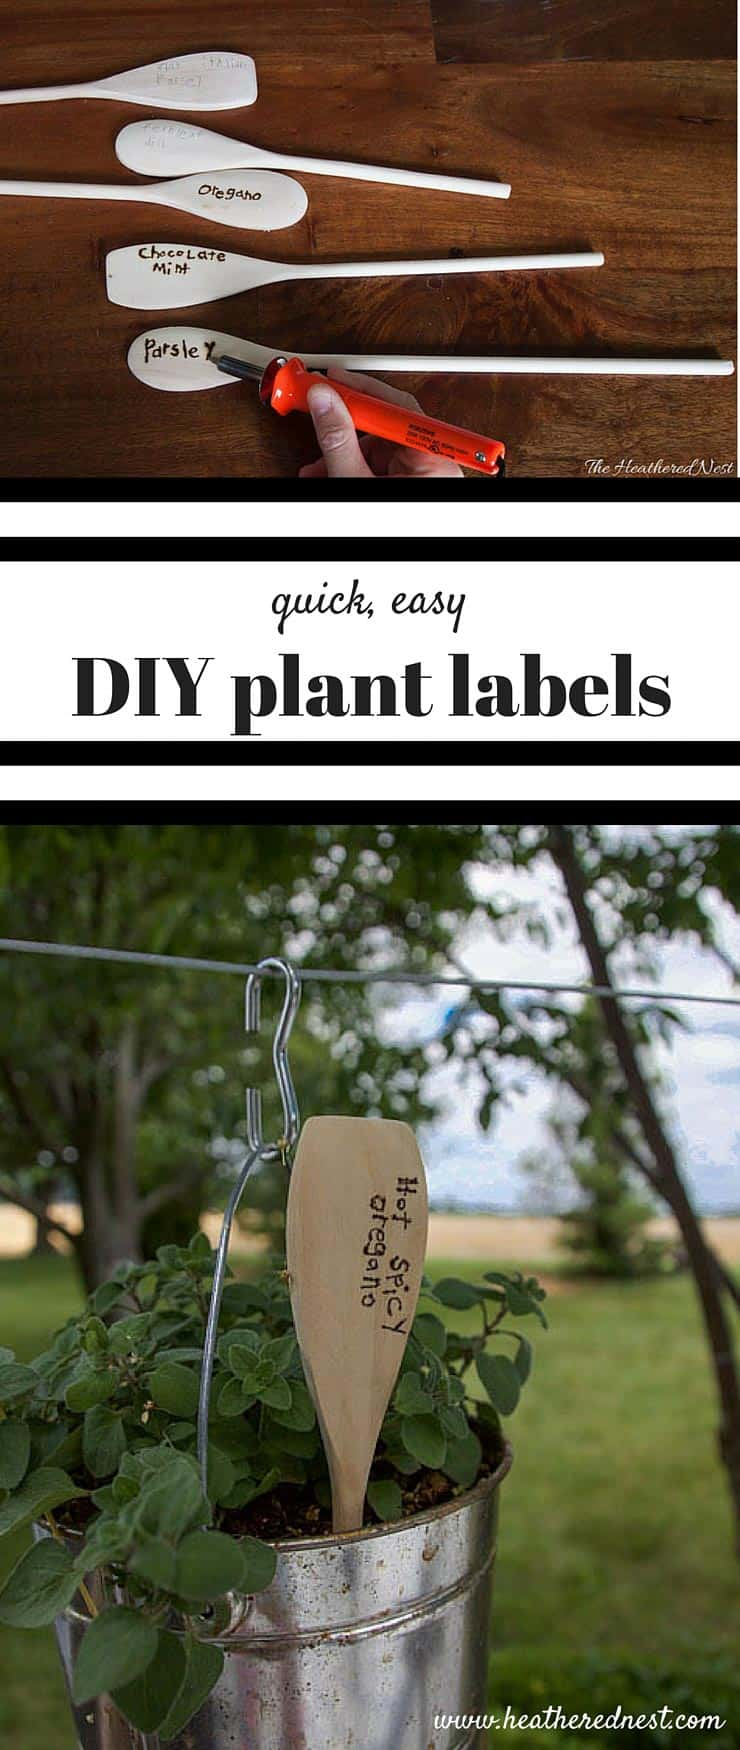 SUCH A GREAT, SIMPLE IDEA!! Quick, simple, inexpensive DIY plant labels garden markers from www.heatherednest.com